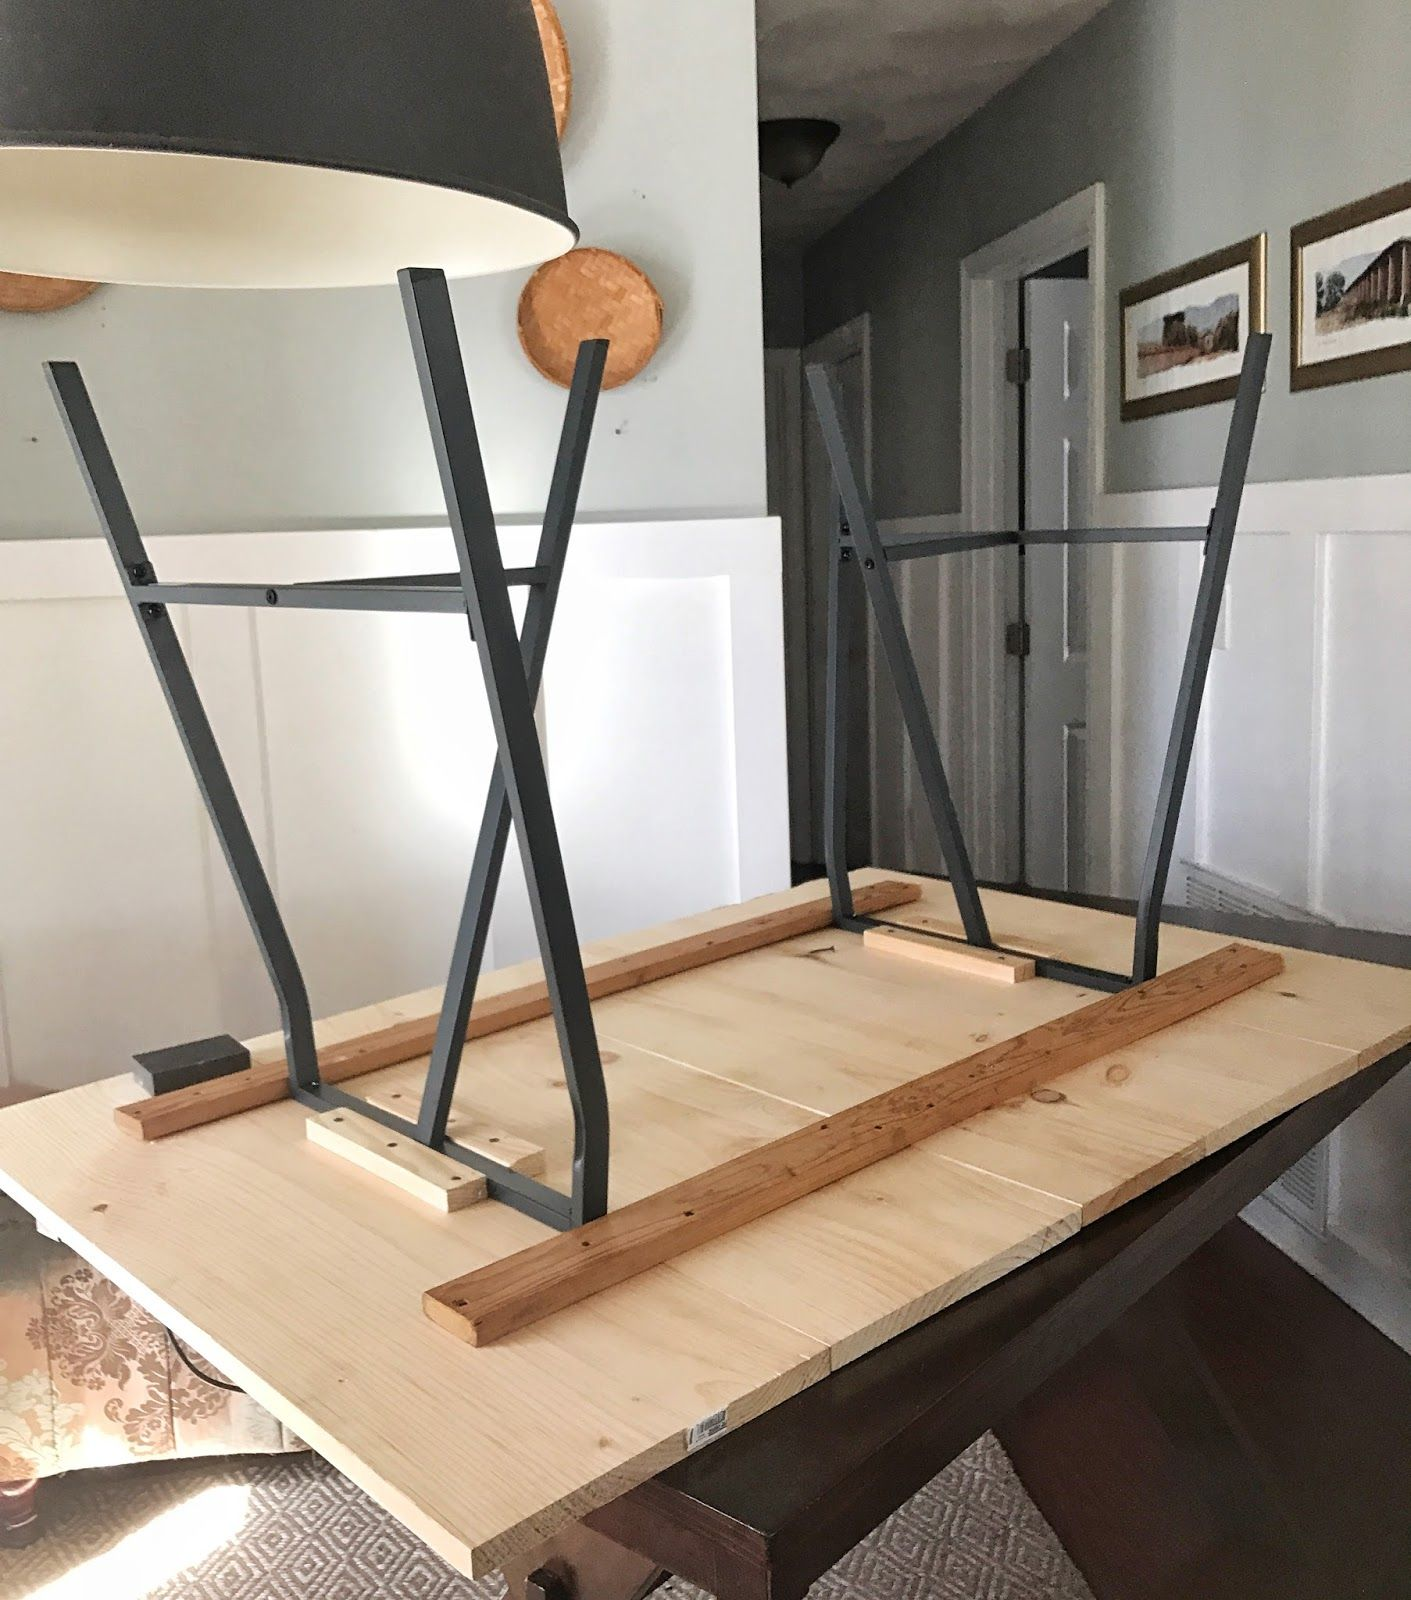 Diy Dining Table Koksbord Diy Diy Koksbord Koksbord Tra